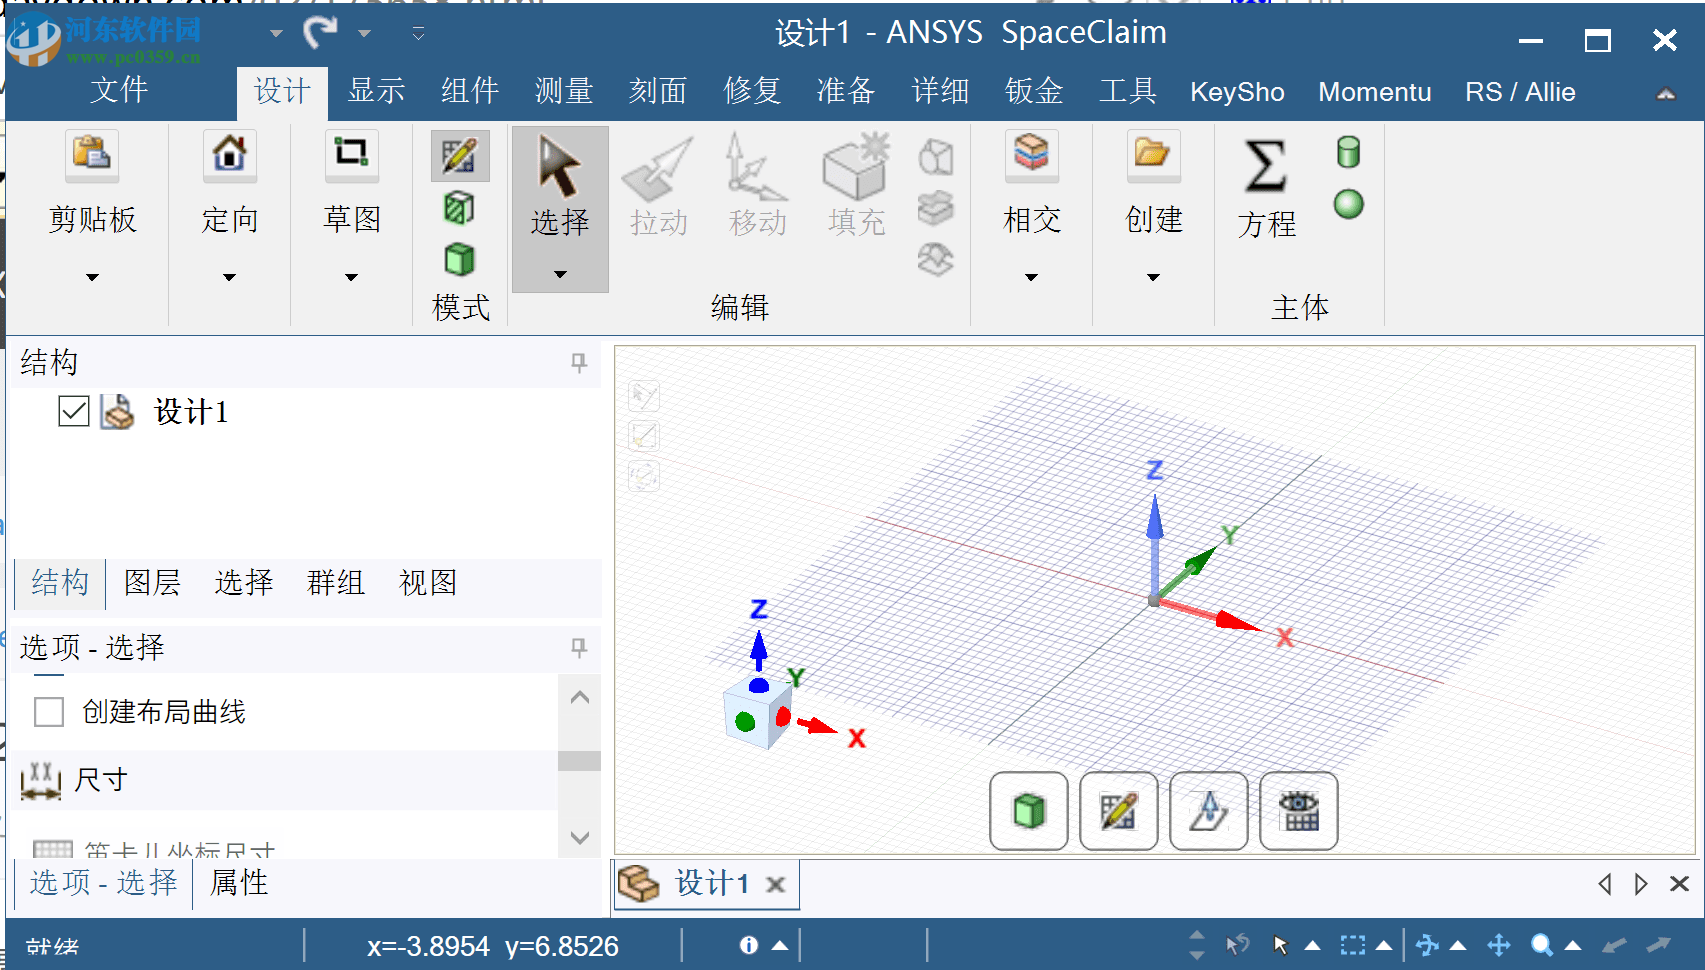 ANSYS SpaceClaim 2018下载 19.0 中文破解版